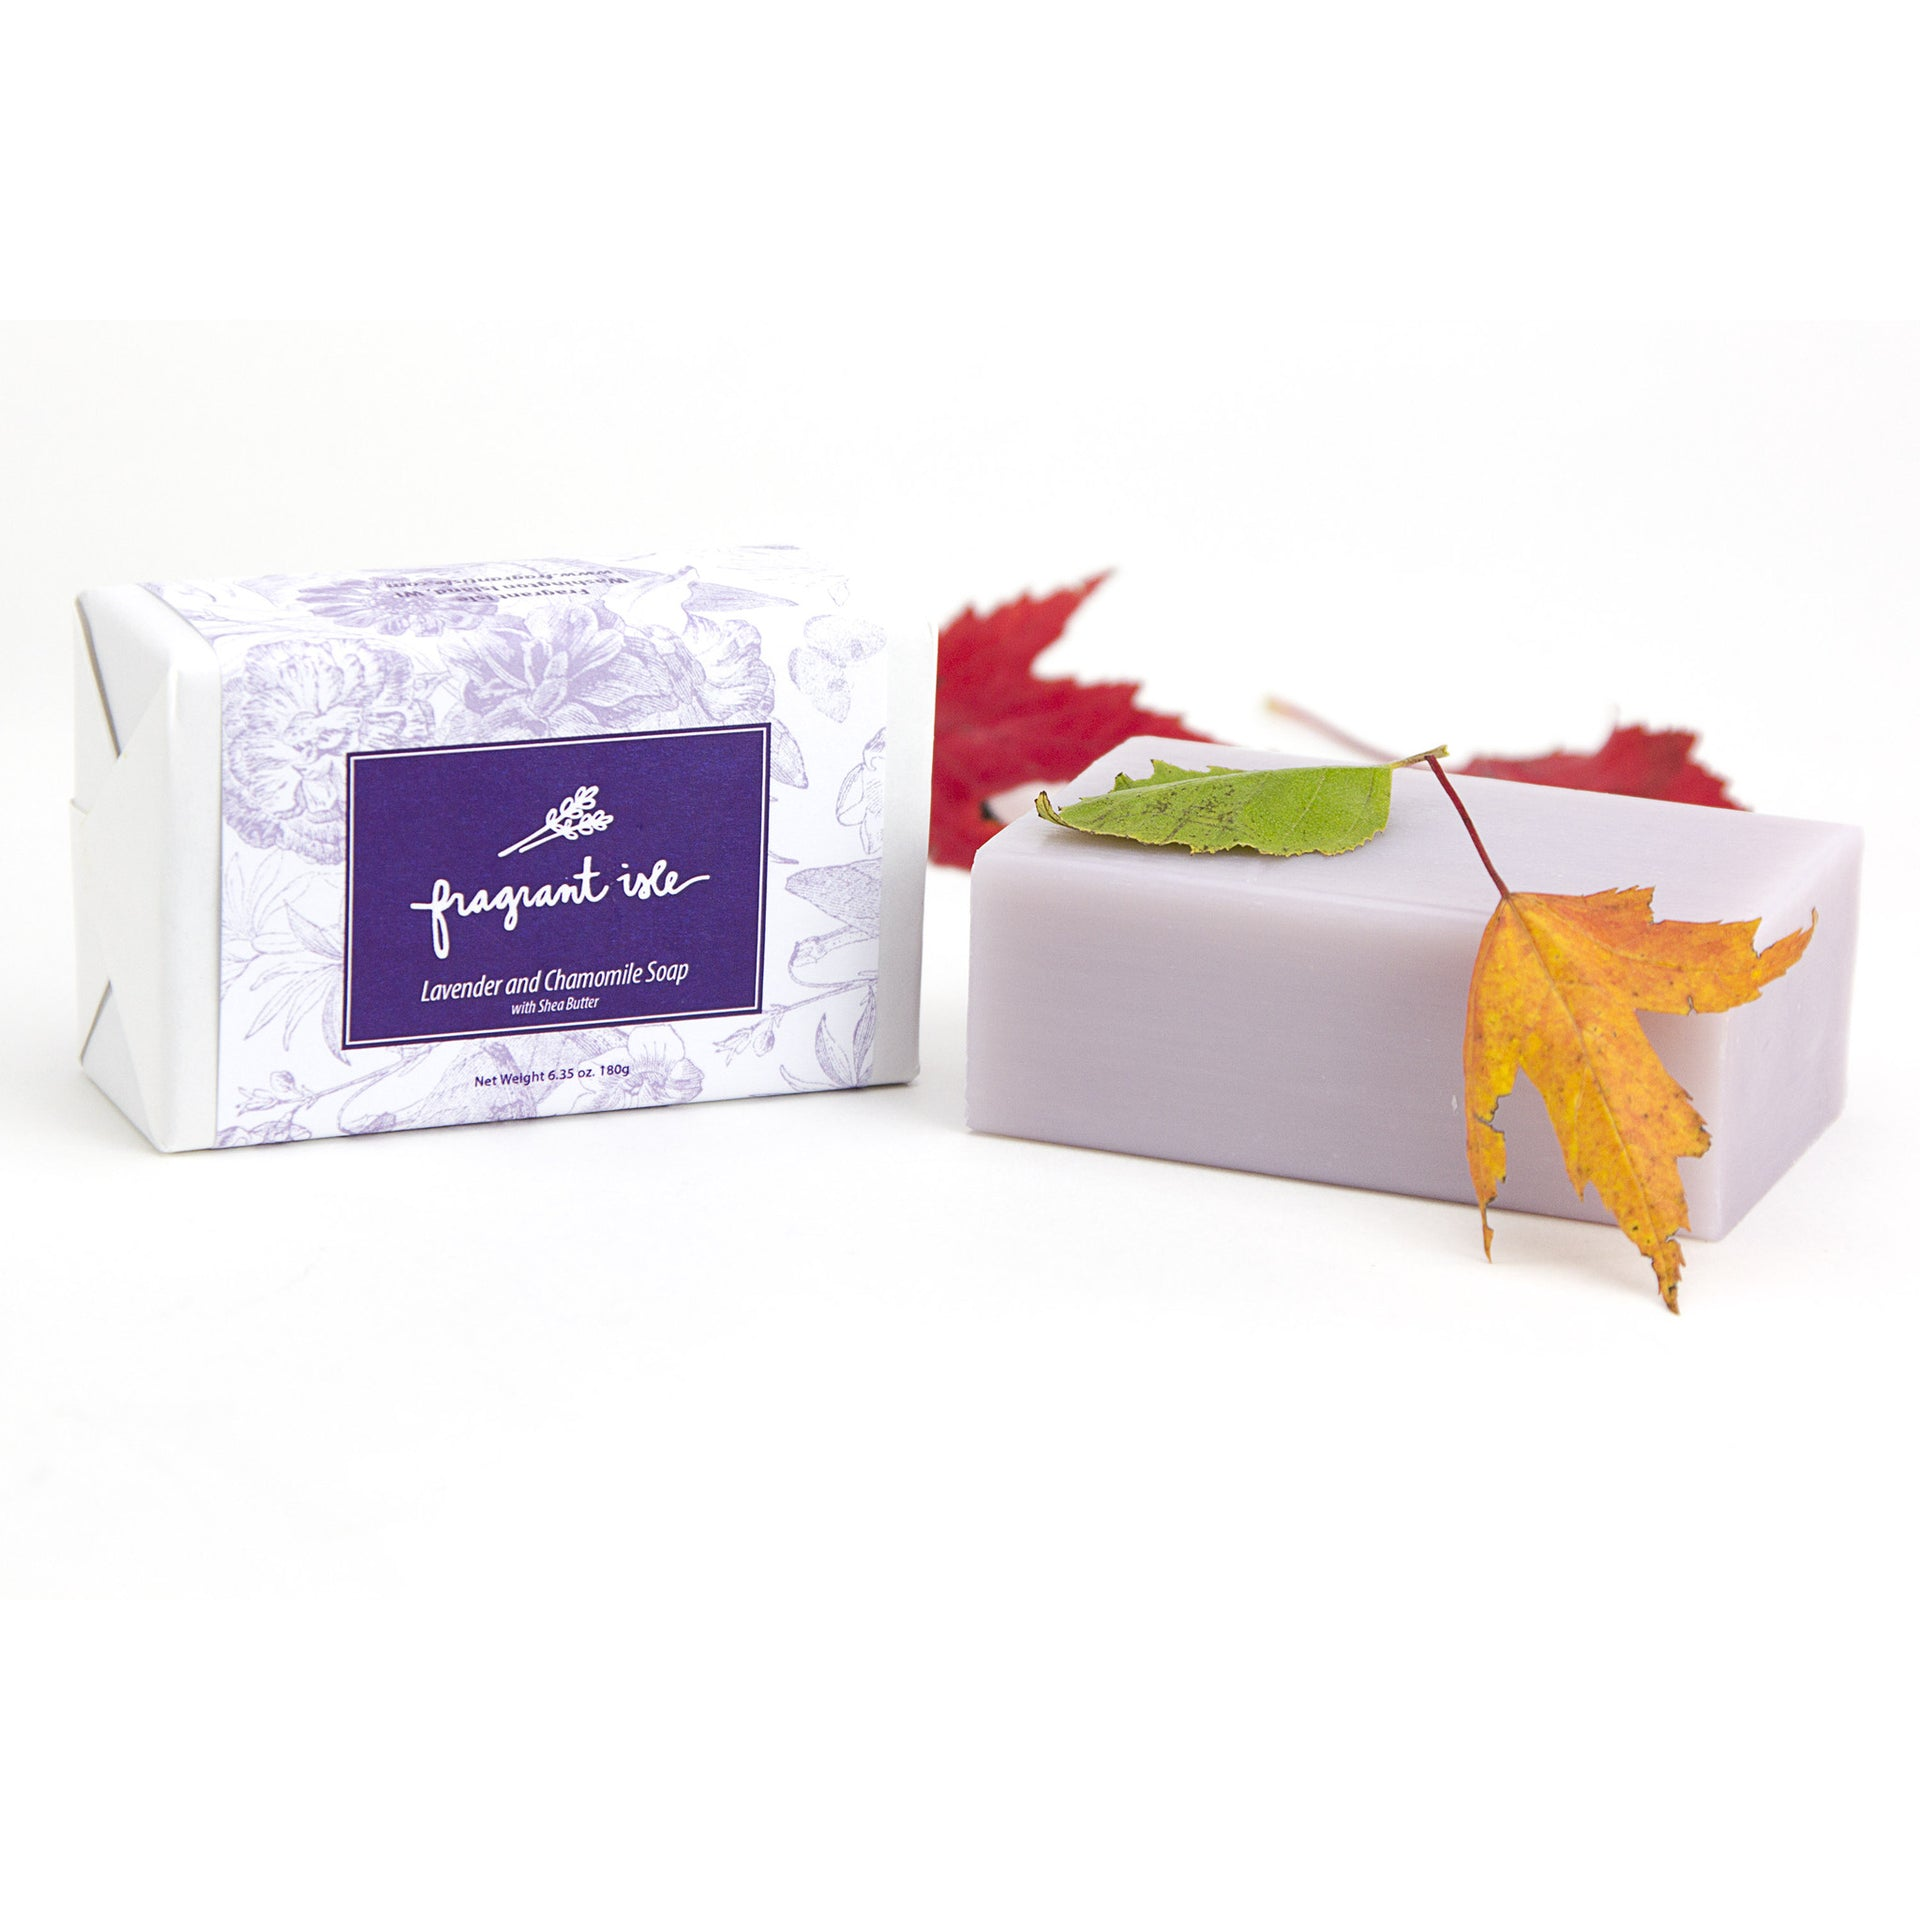 Lavender Chamomile Bar Soap - 6.4 oz